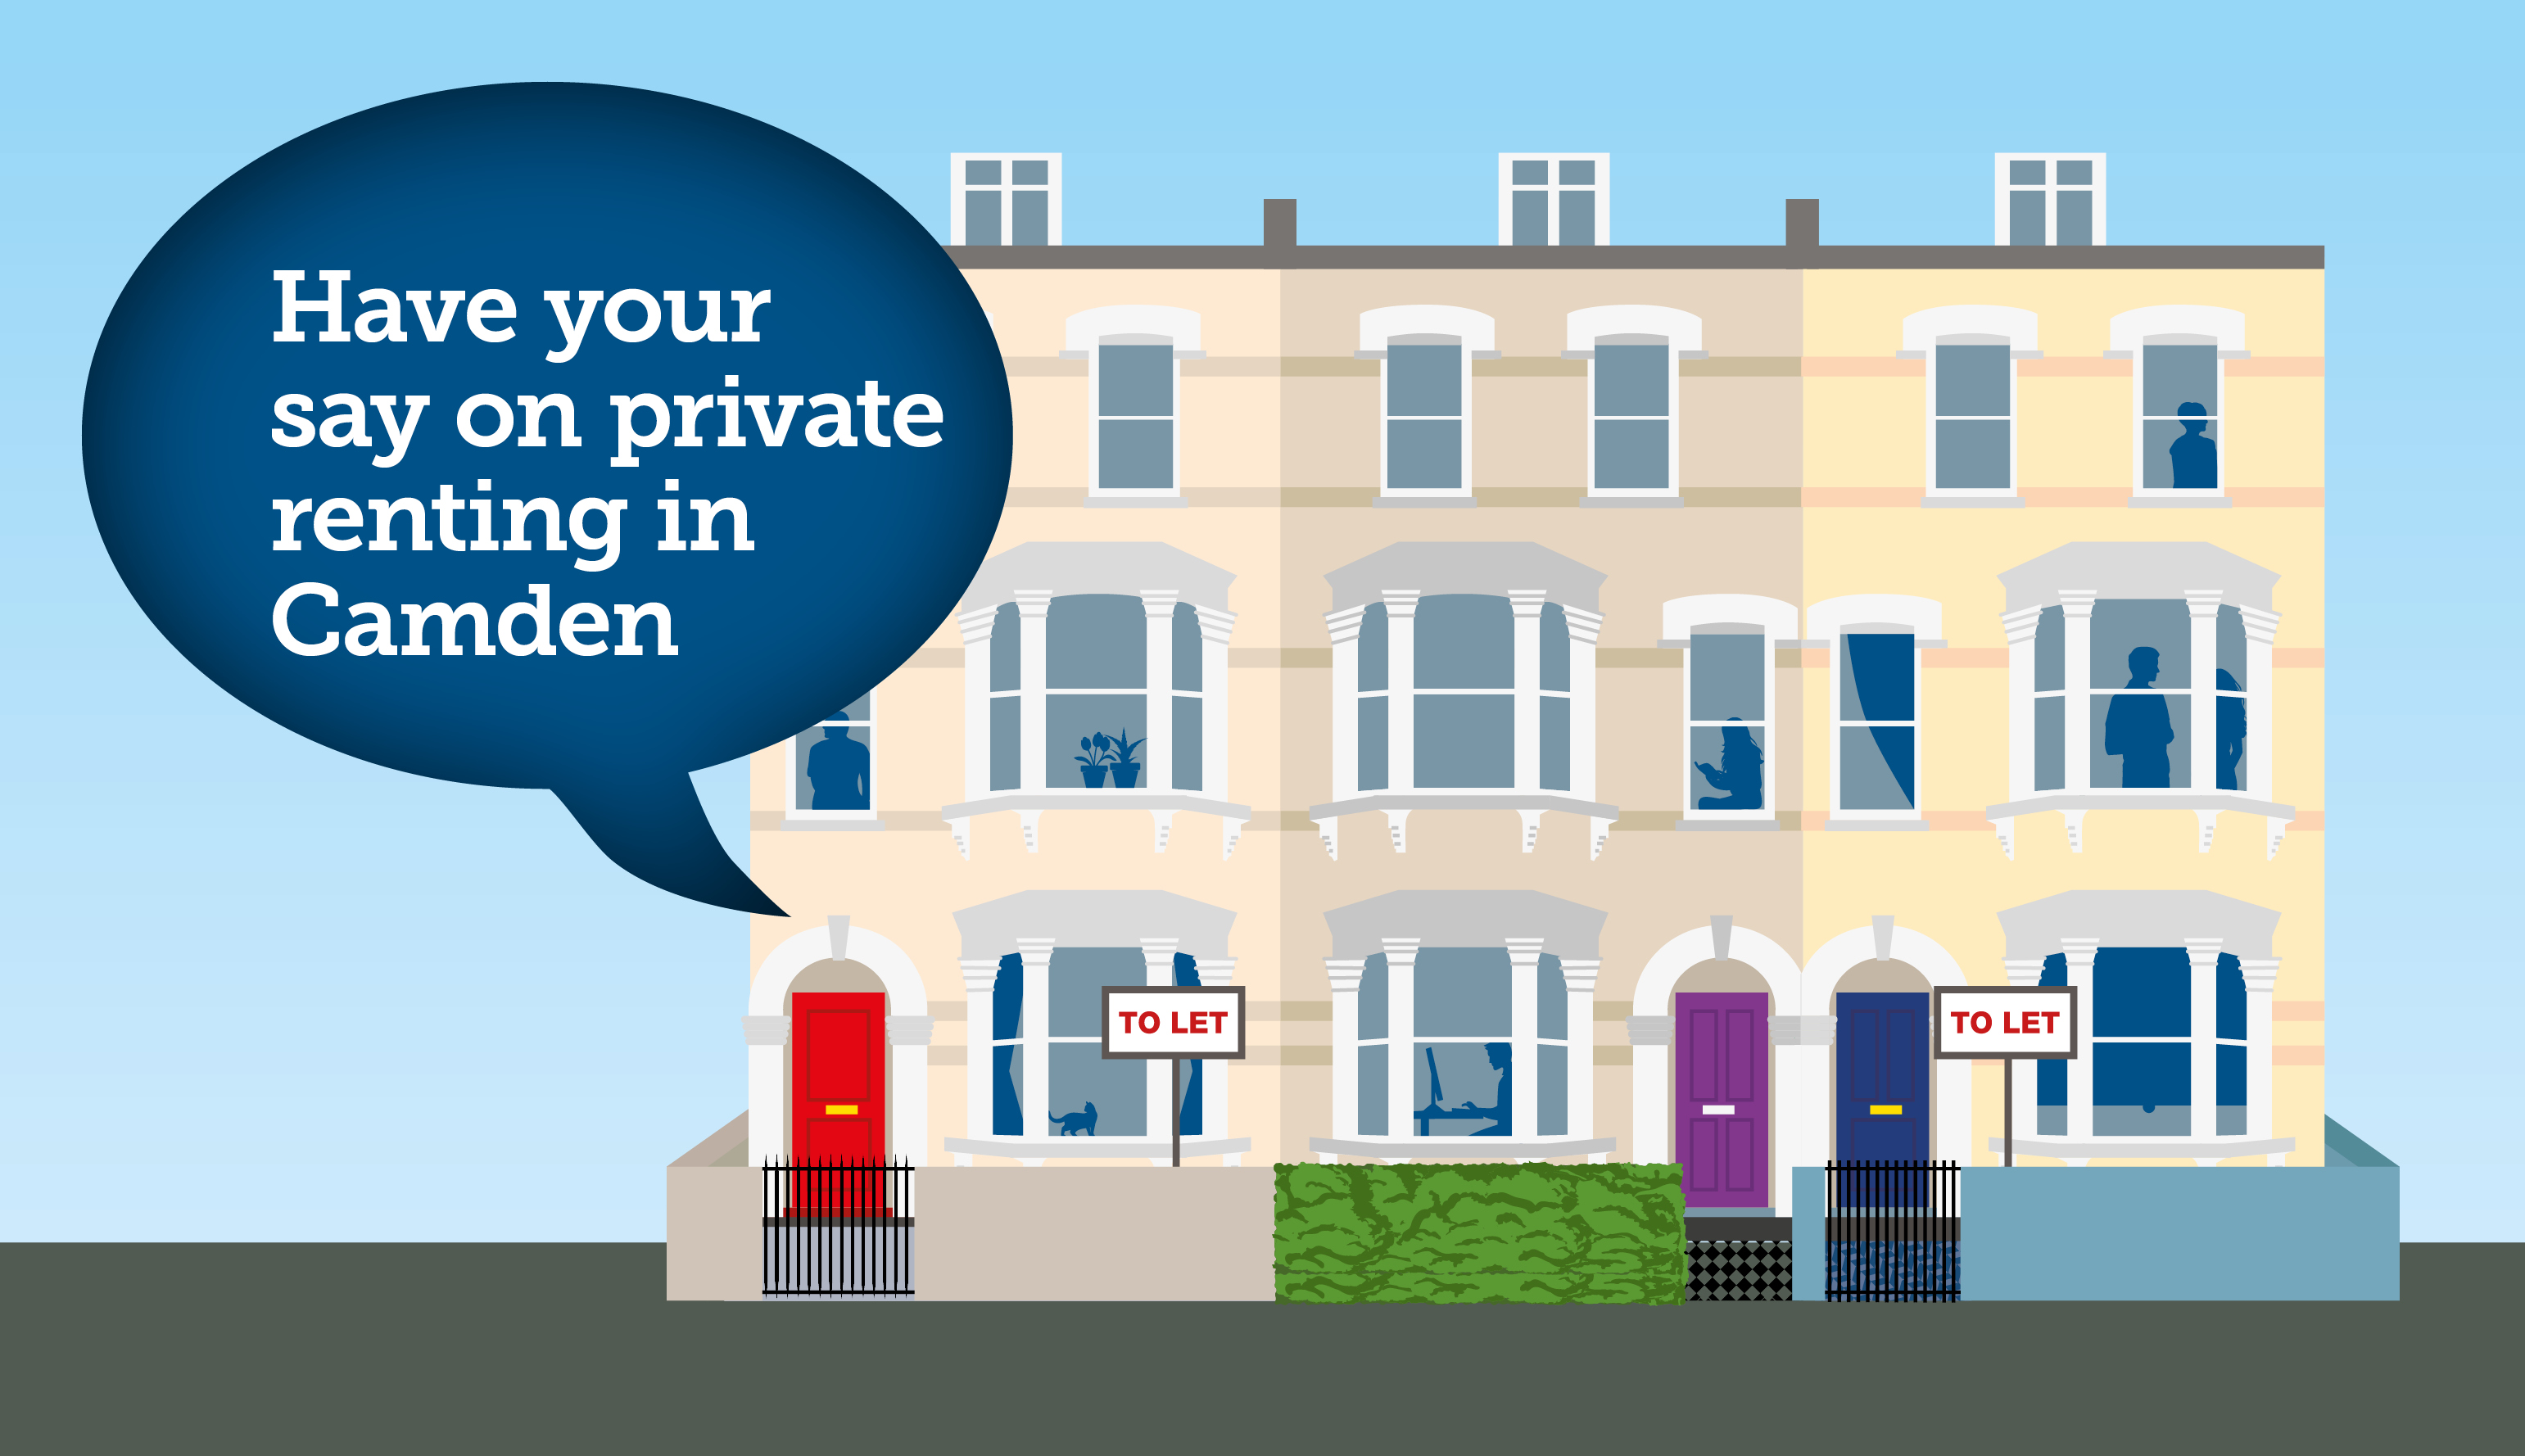 Have your say on private renting in Camden